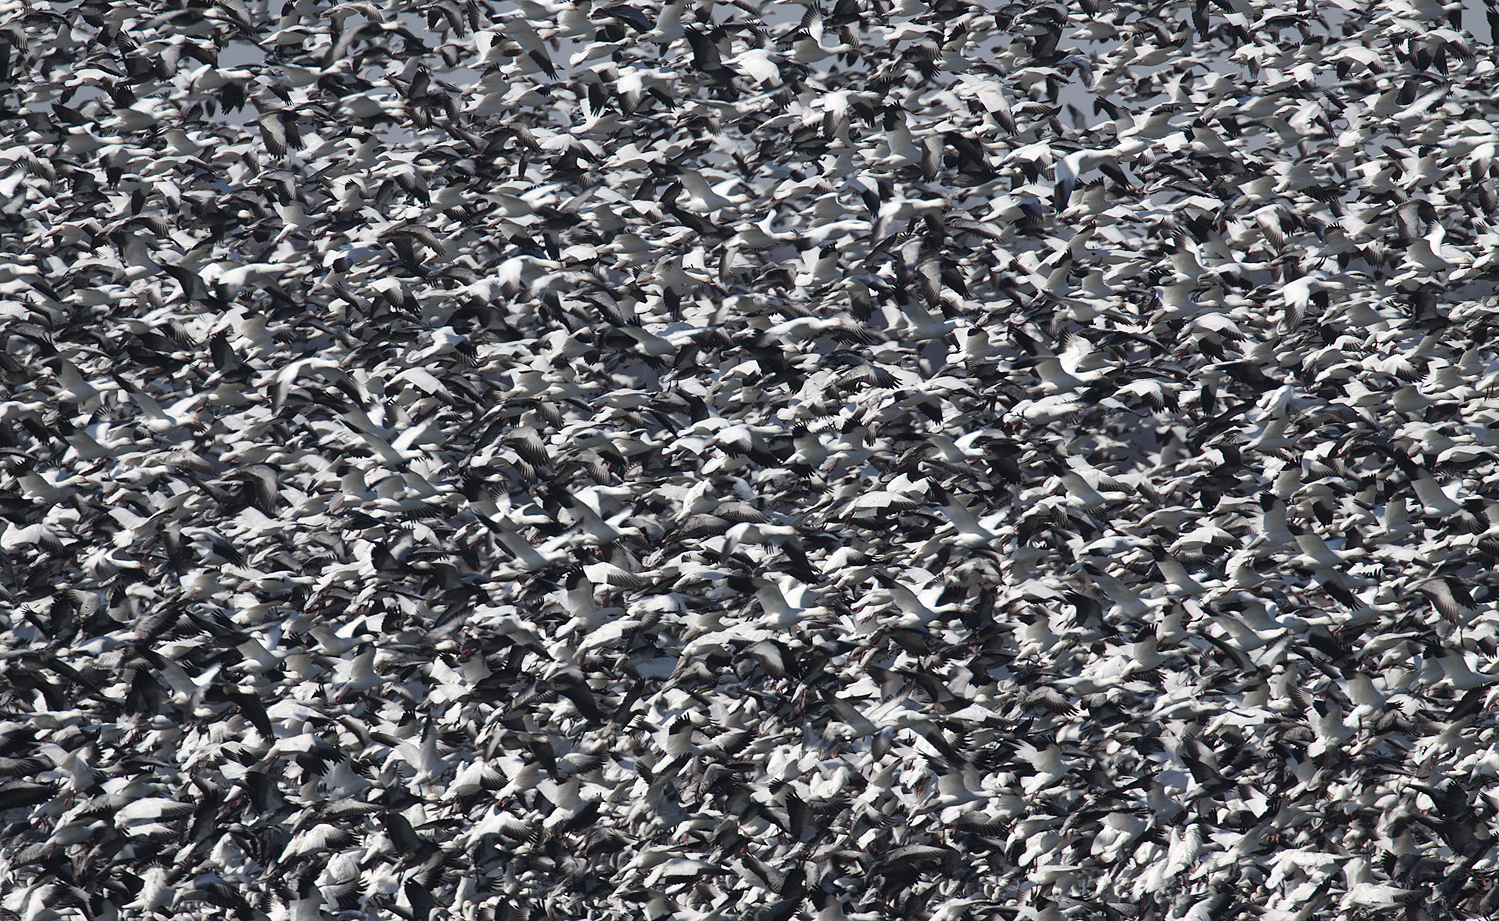 Thousands of Snow Geese in Illinois